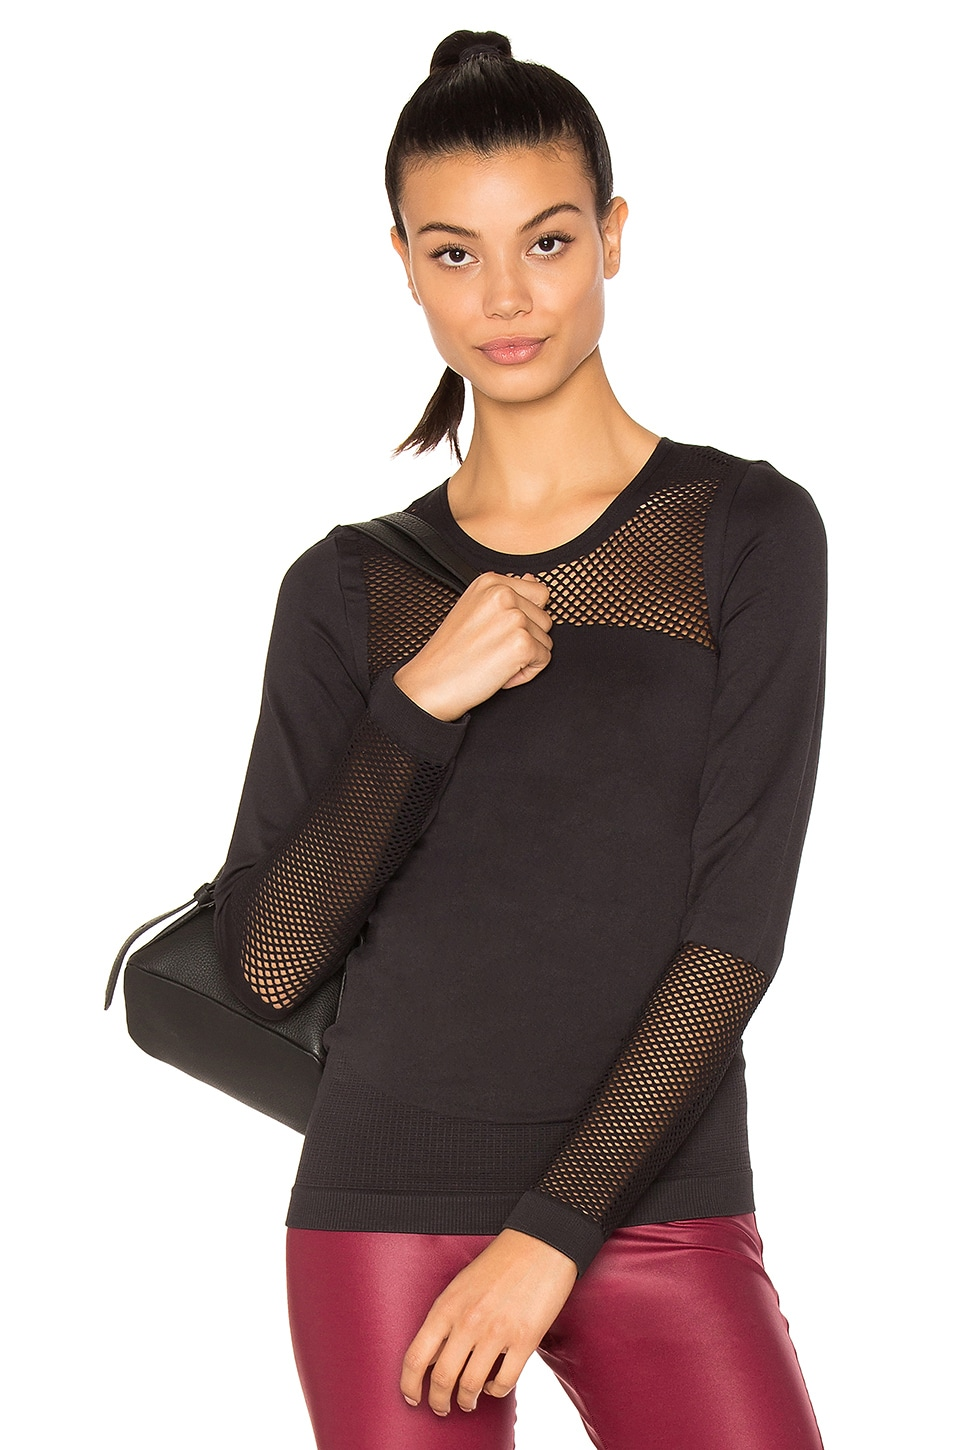 The Seamless Mesh Top by Adidas By Stella Mccartney